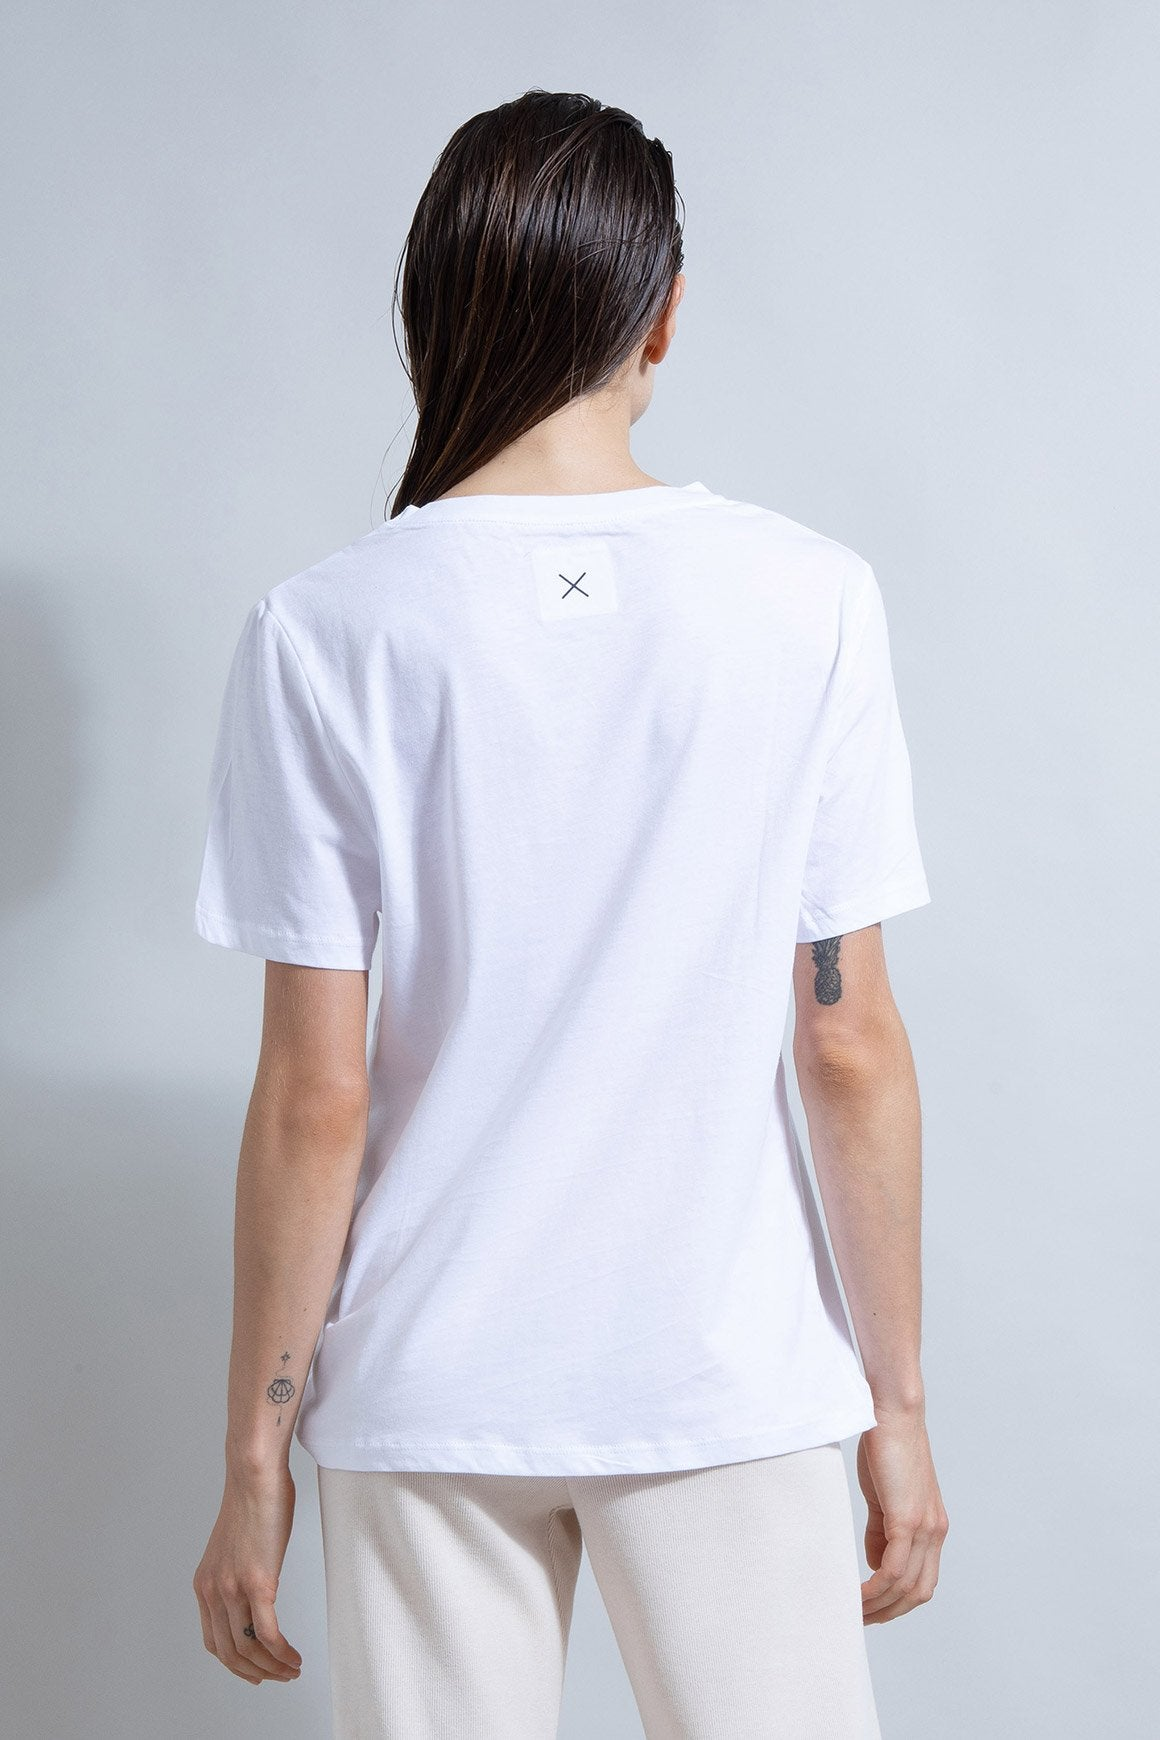 This is First Base Boyfriend Tee white